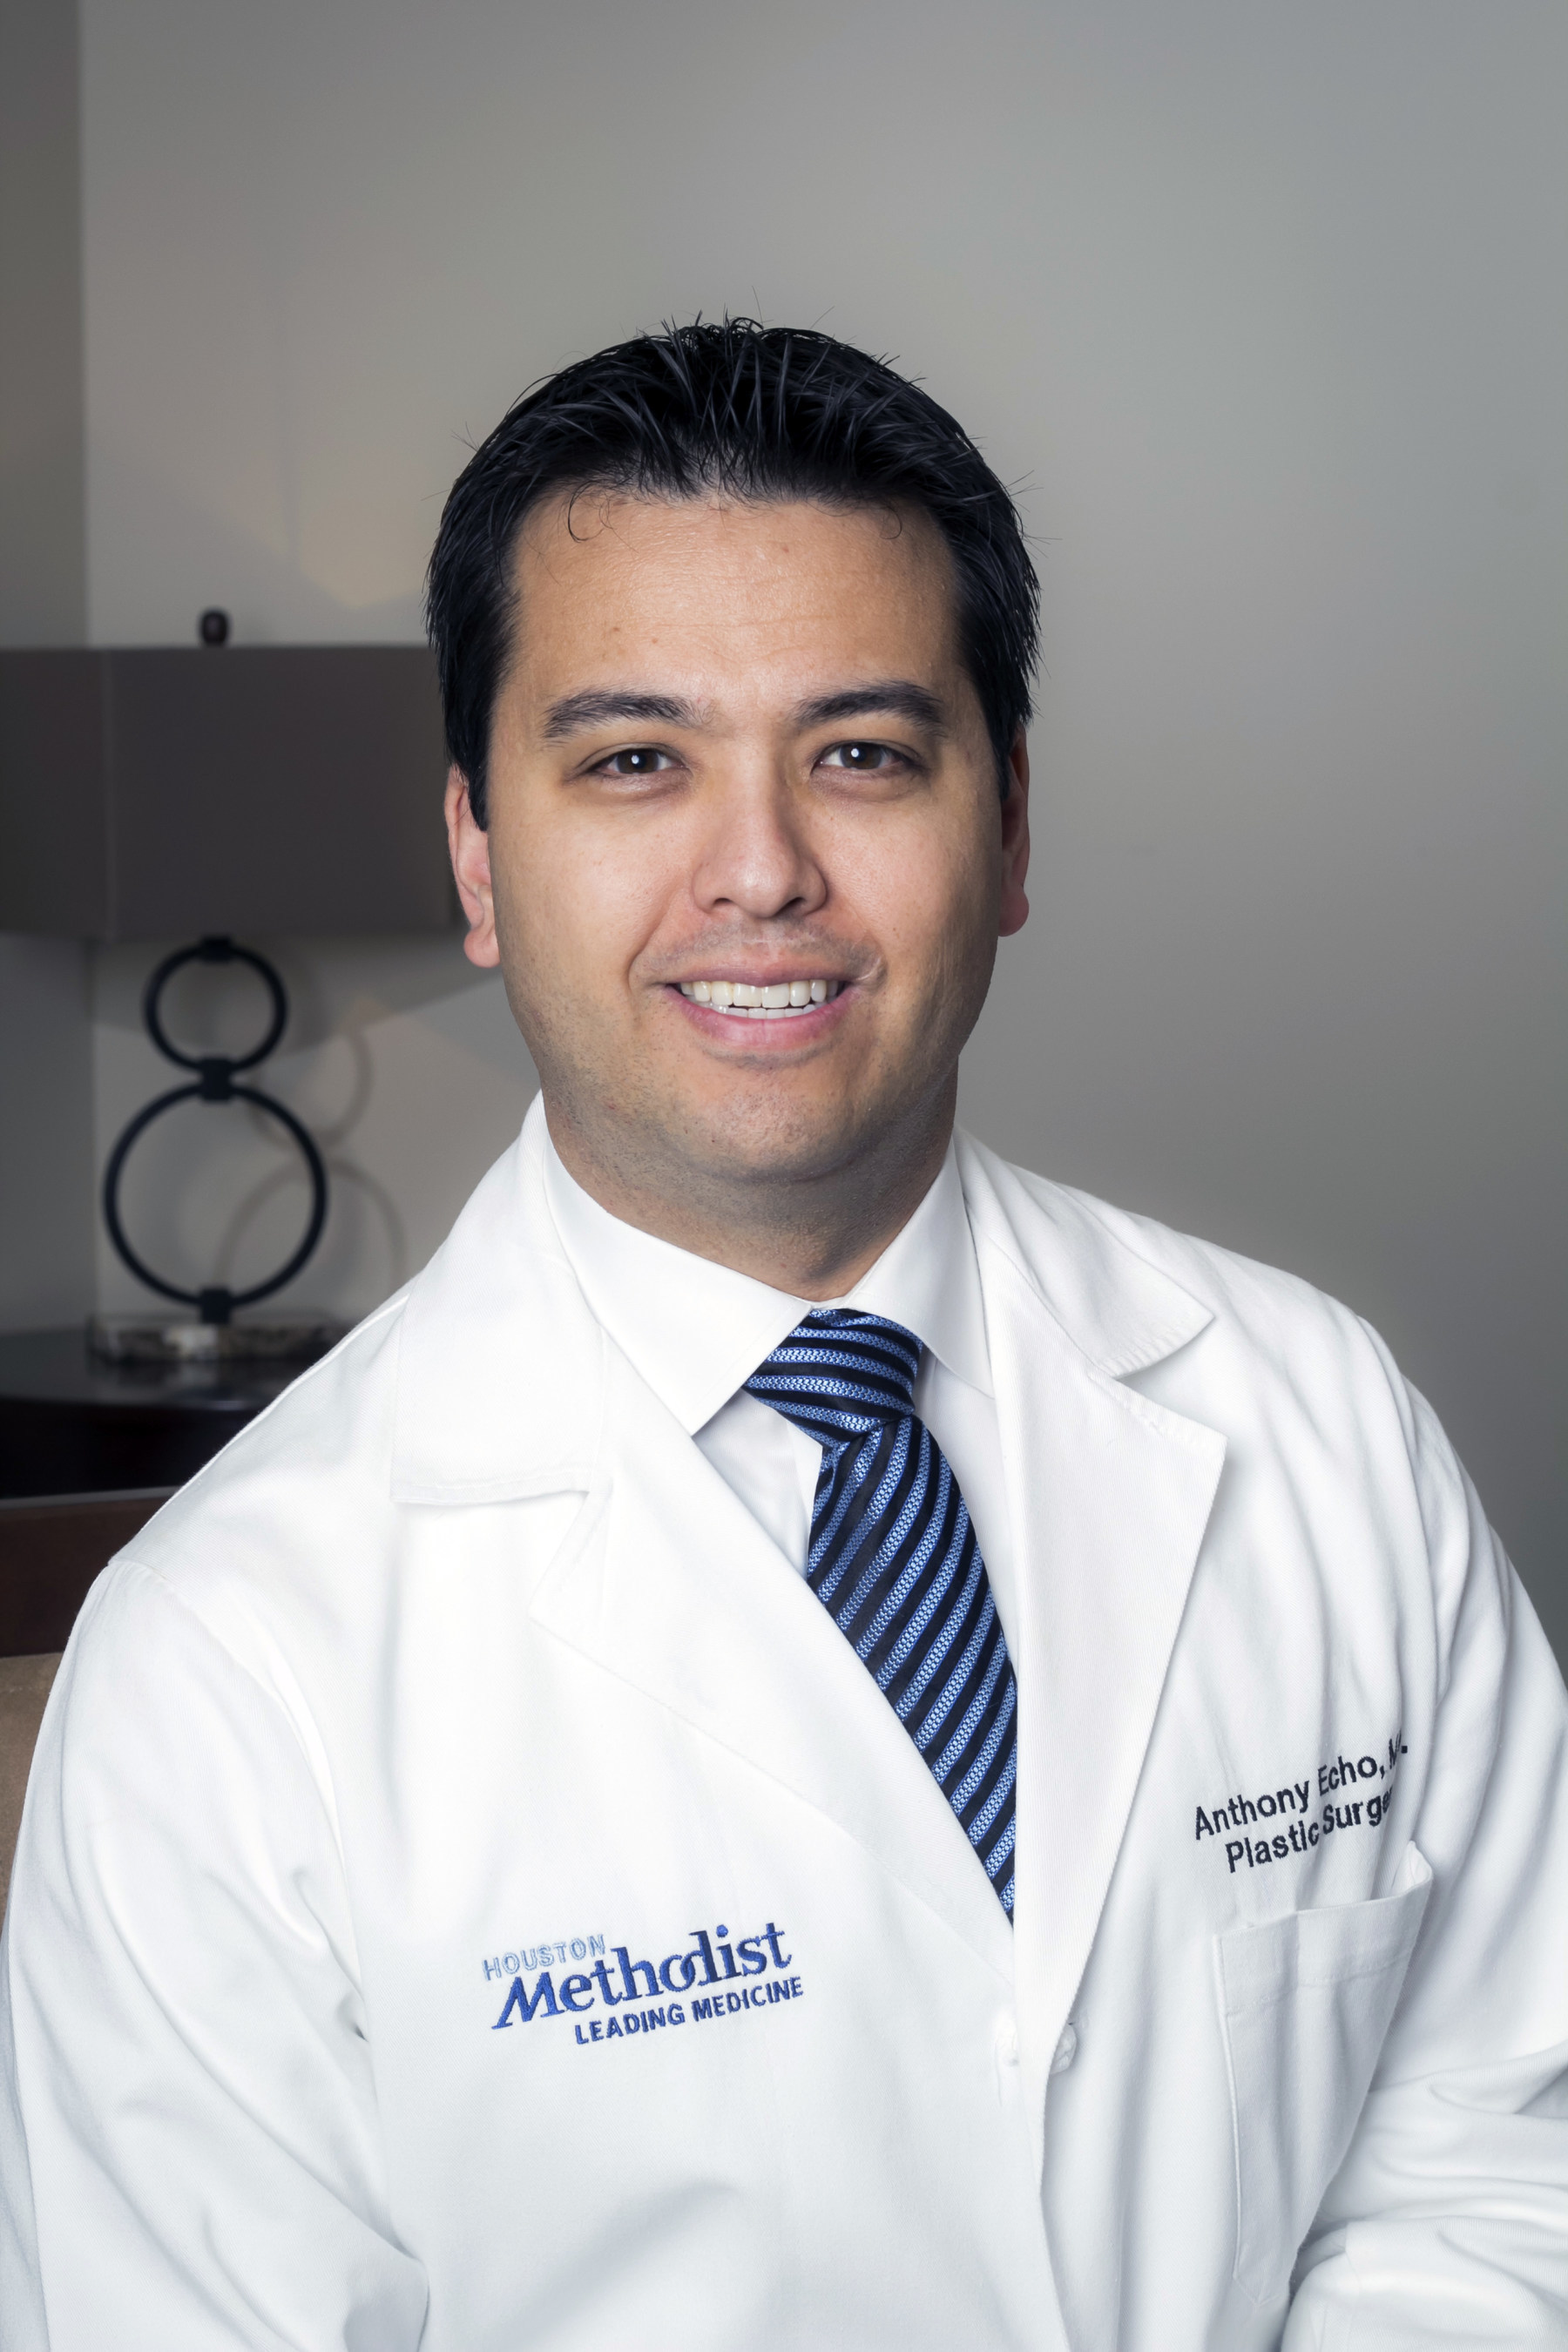 Dr. Anthony Echo, plastic and reconstructive surgeon will provide discounted facial rejuvenation consultations on August 10, 2016, at Houston Methodist Willowbrook Hospital.